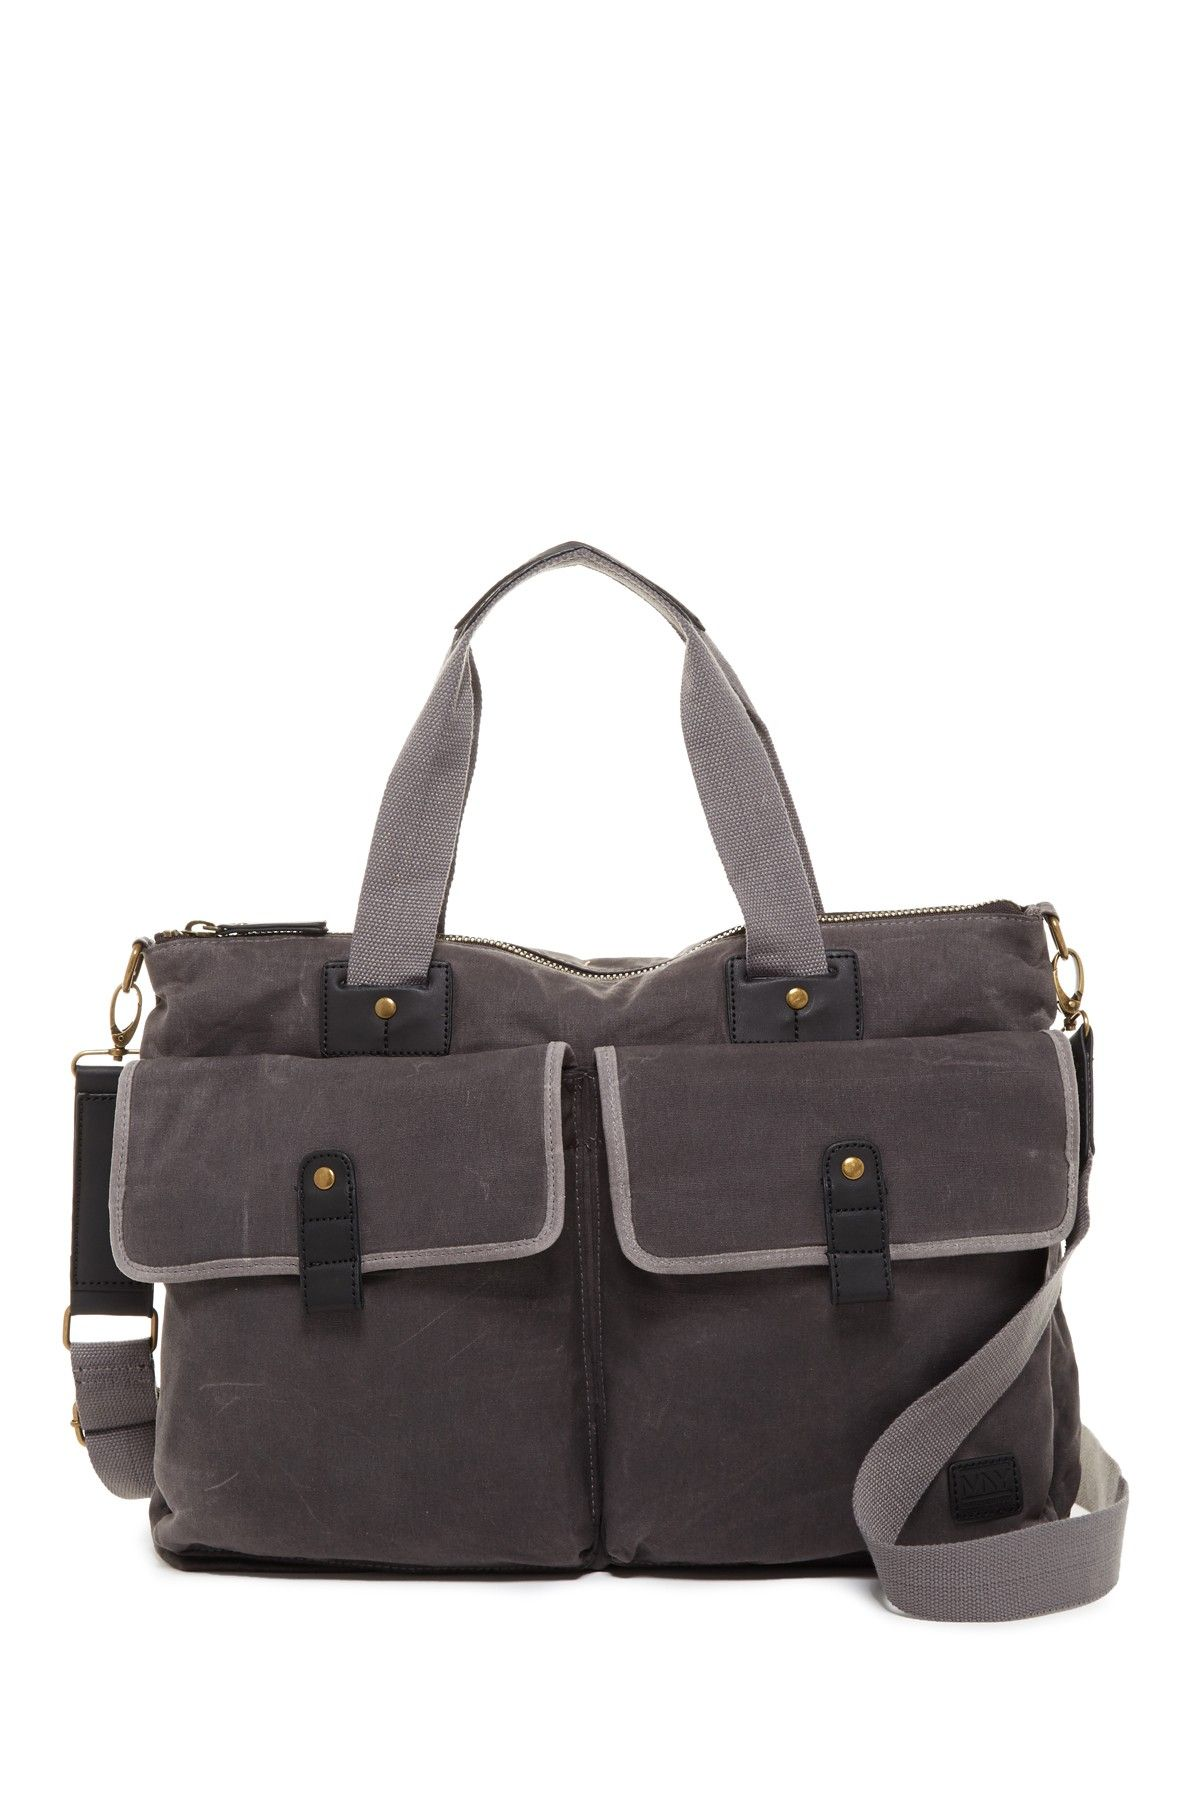 Fairfield Leather Trimmed Double Handle Carry All